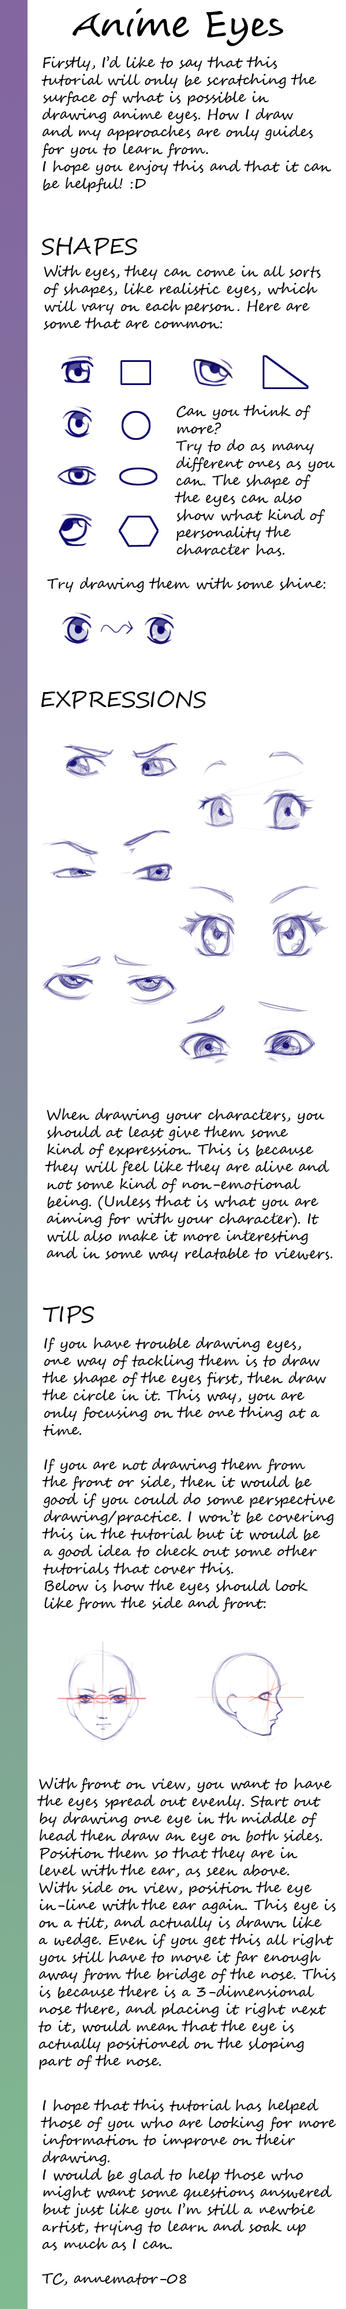 Tutorial on drawing anime eyes by annemator-08